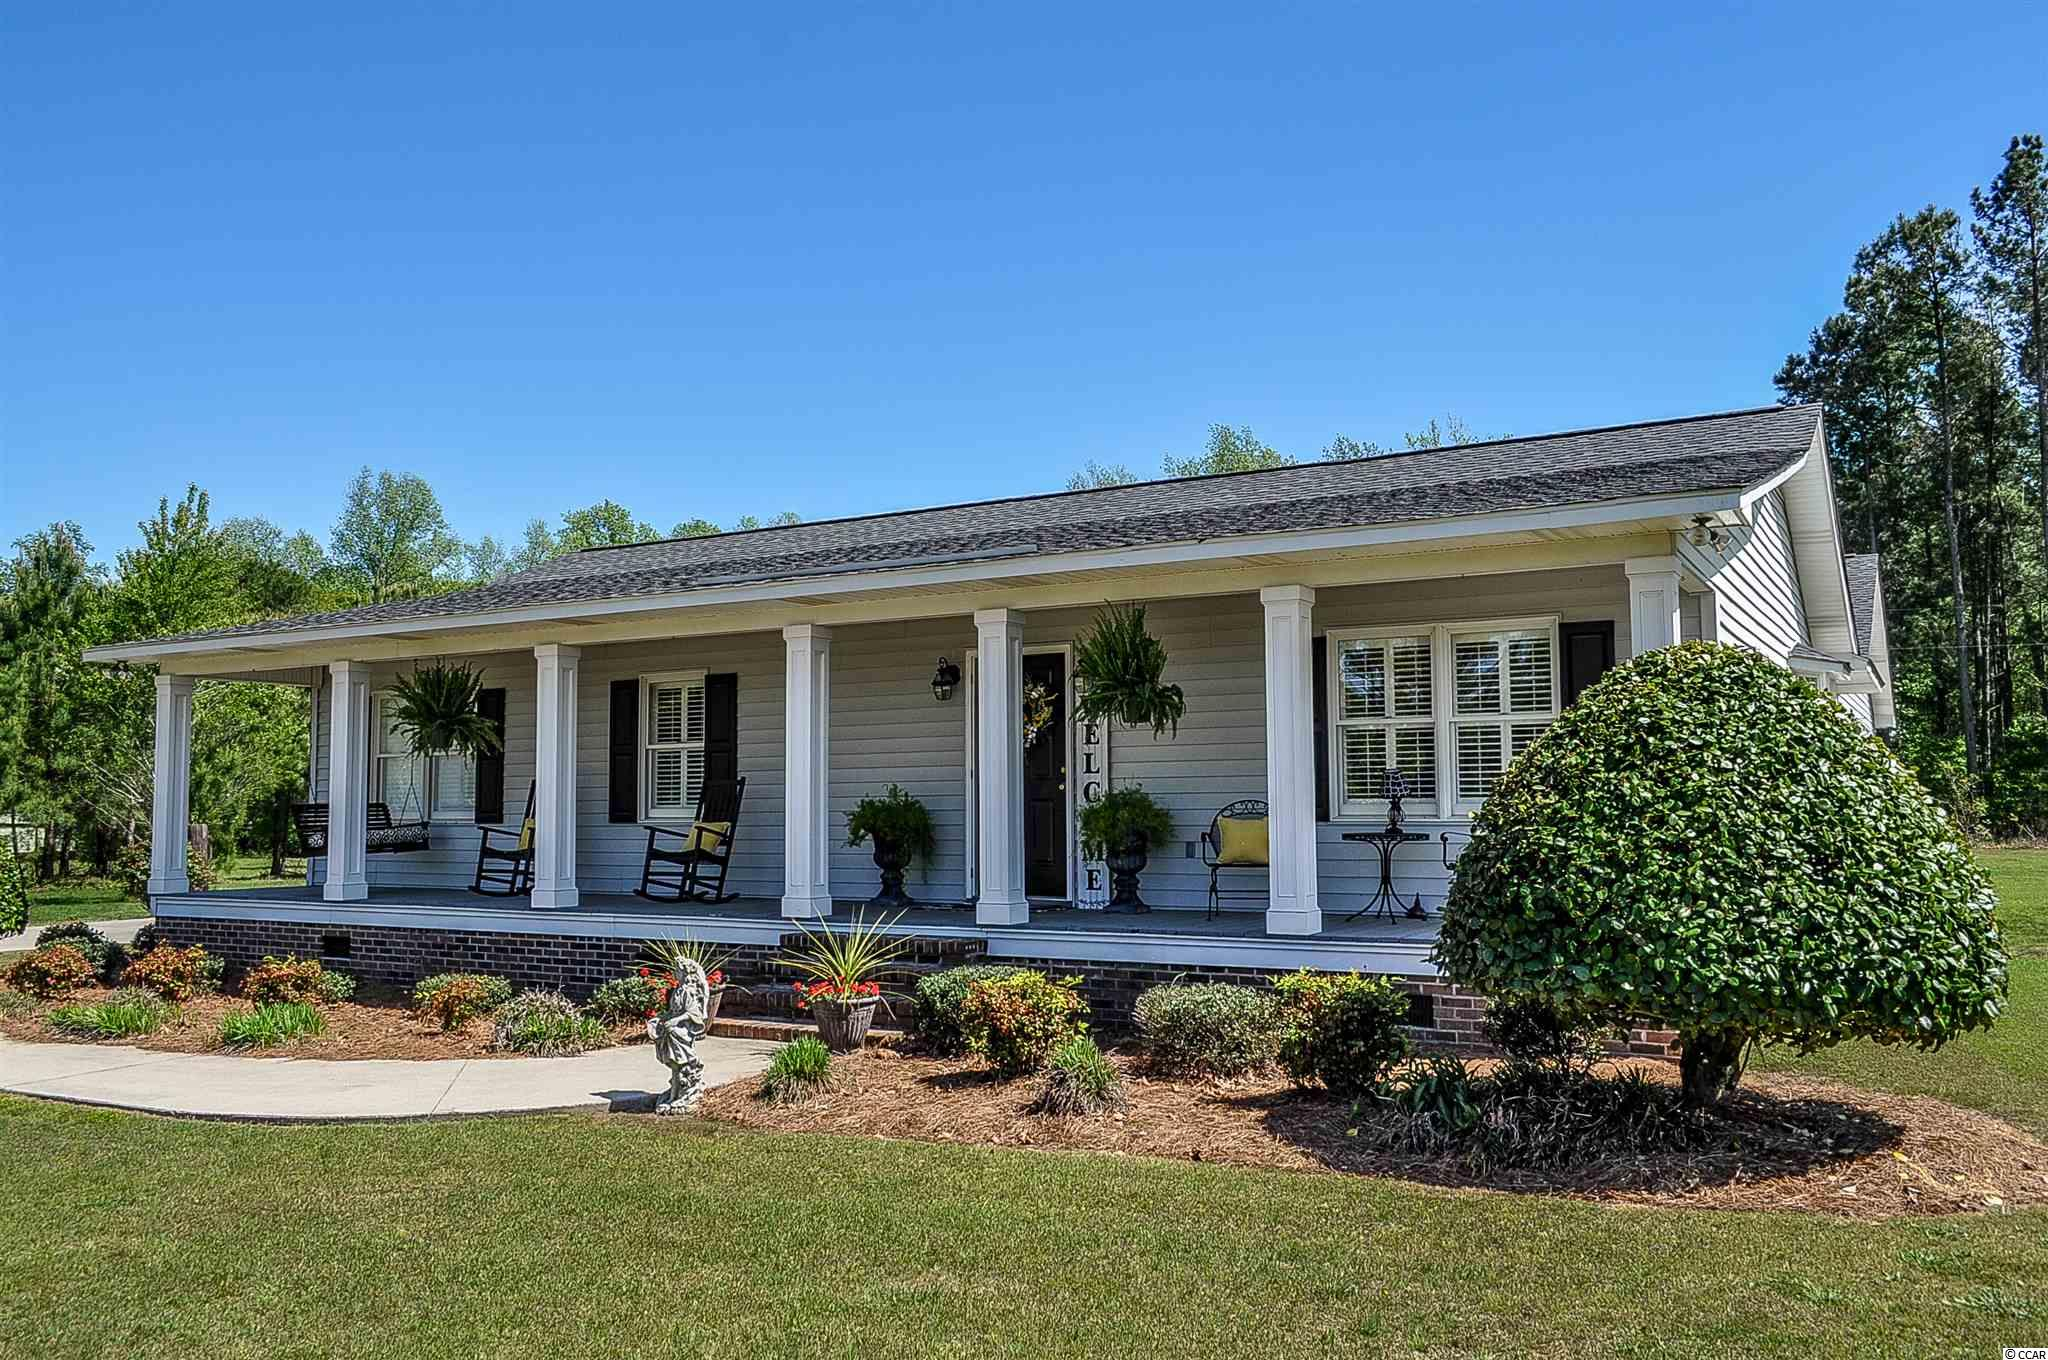 Enjoy the peace and quiet of country living! Convenient location just minutes from shopping and historical downtown Conway, this well maintained 3 bedroom, 2 1/2 bath home features both .69 acre of land and no hoa!  From the welcoming front porch and well manicured landscape to the cozy living room, this property instantly makes you feel right at home. With the long driveway and oversized side load garage you have ample room for a boat or RV.  Additional storage 6x24 in rear of garage.  Separate laundry room with washer and dryer. Home has hardwood flooring with laminate in the bedrooms, solid surface countertops in kitchen, and plantation shutters throughout.  Roof replaced in 2016. Close to schools, dining, shopping and a short drive into Myrtle Beach. This home is truly a must see to appreciate.  Call for your appointment today!